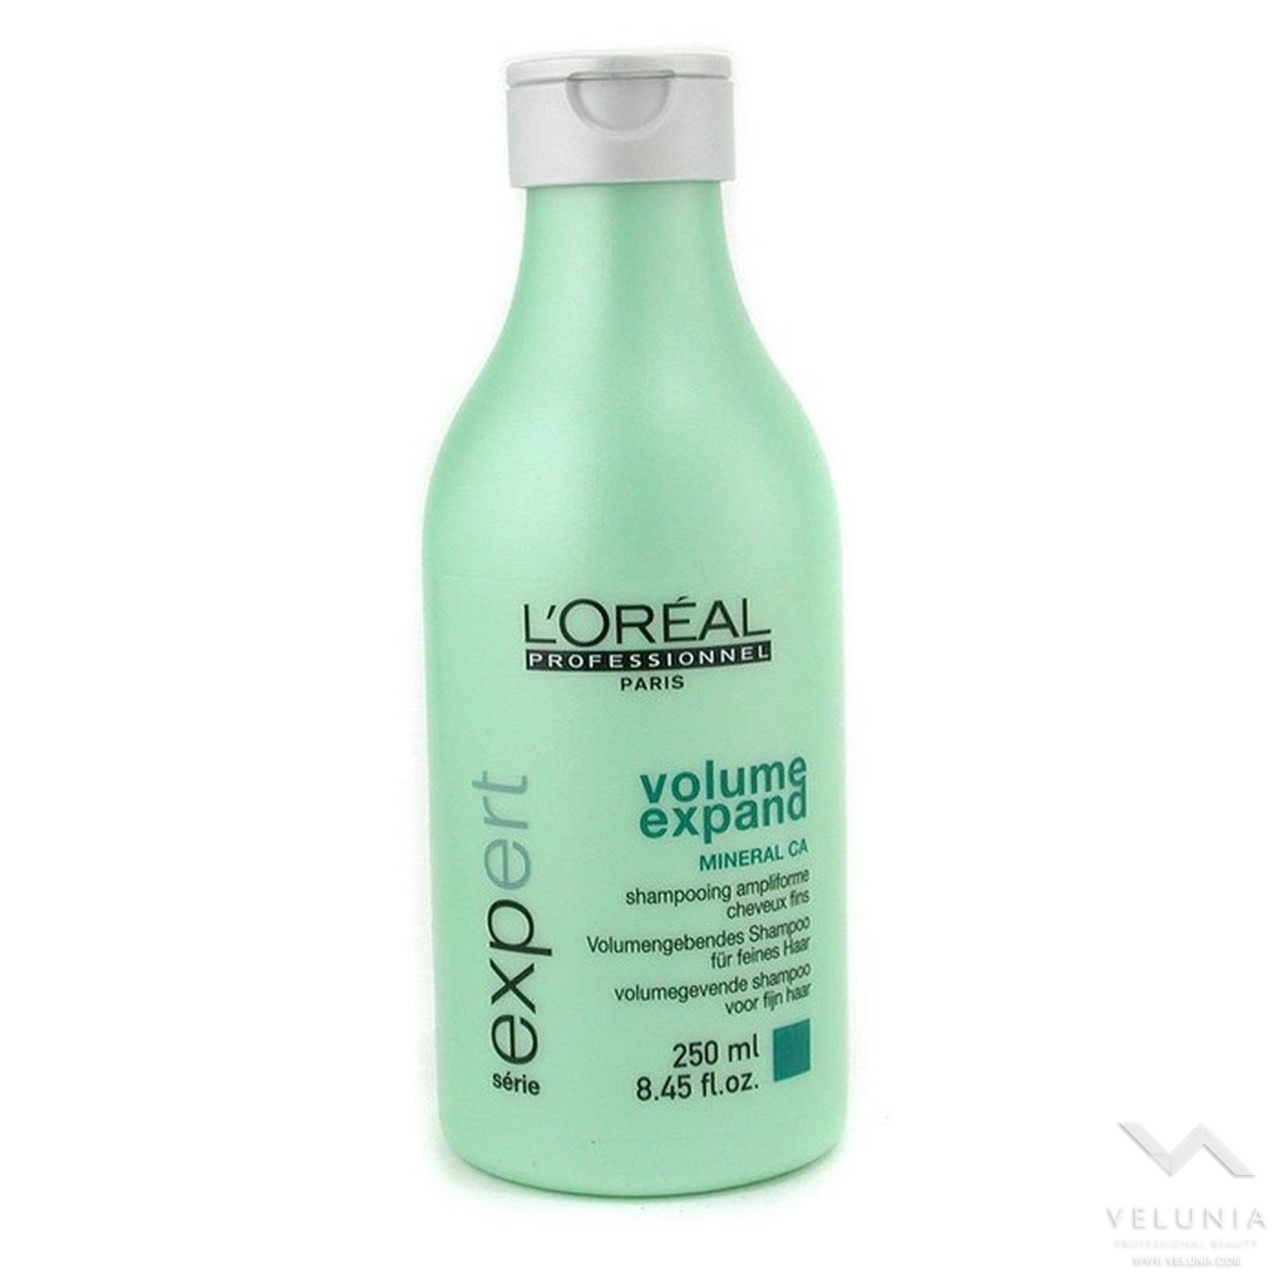 L'Oreal Expert Volume Expand 250ml 1